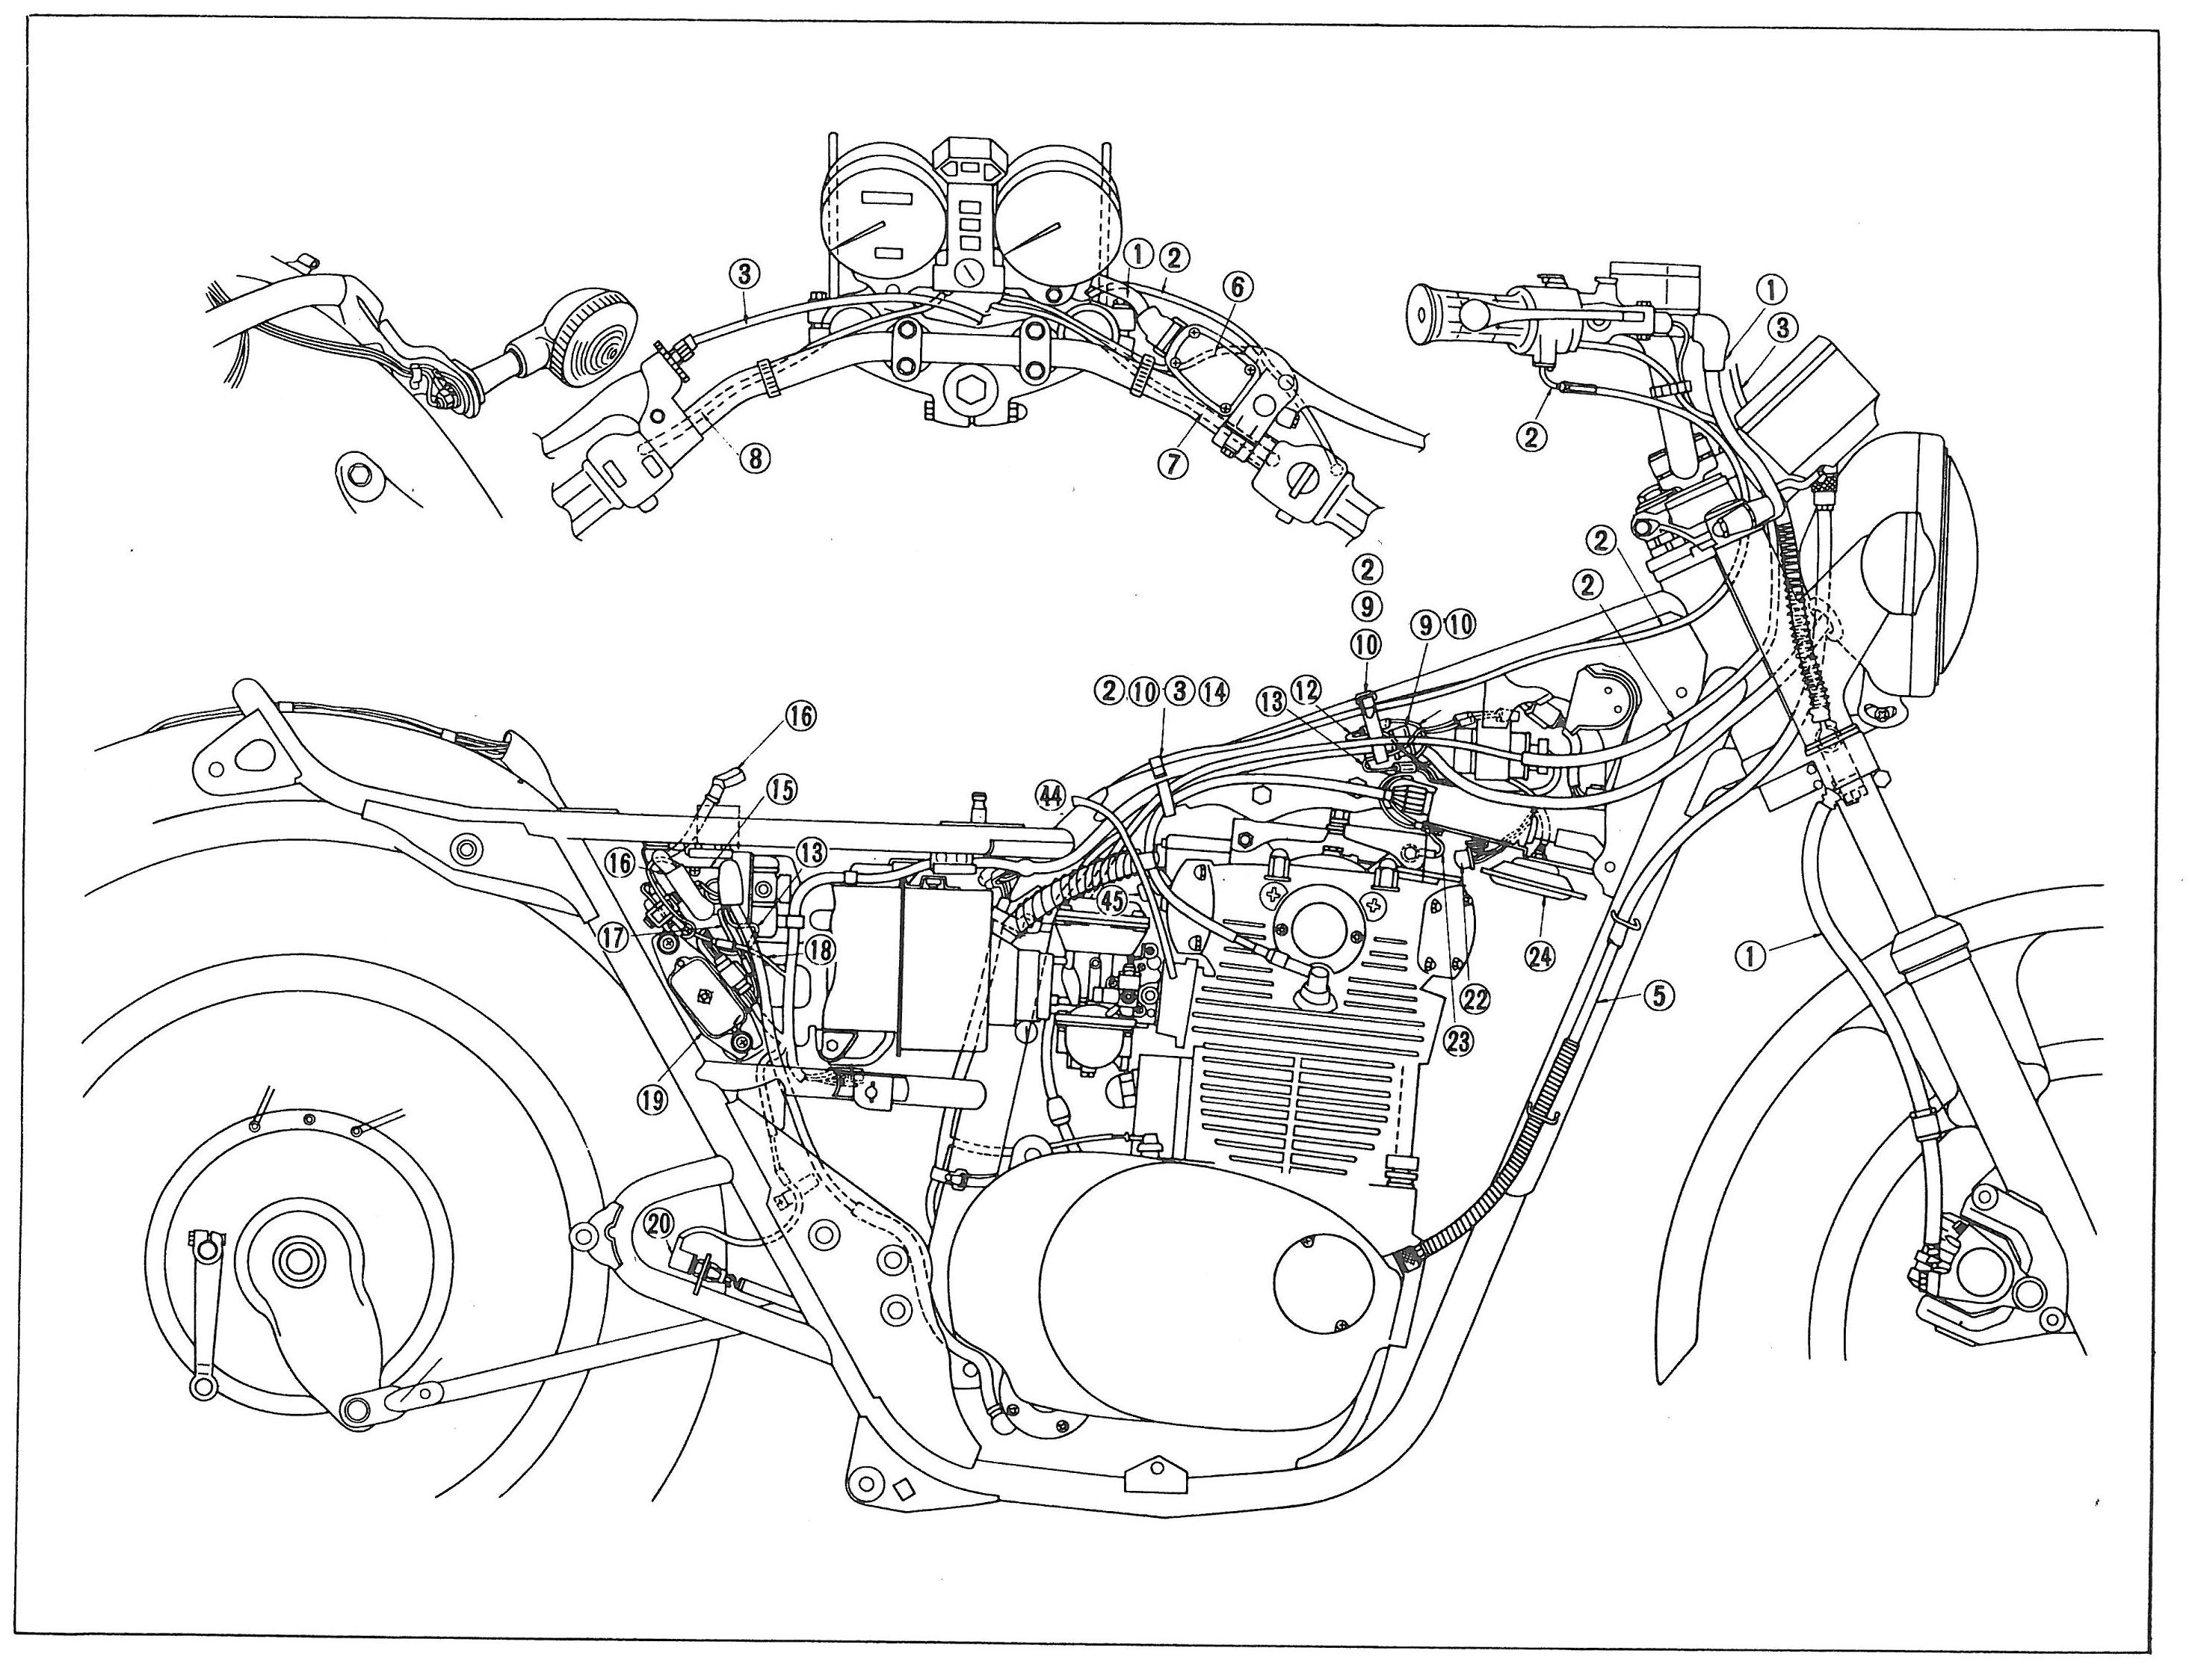 Yamaha Xs 250 Wiring Diagram Schematics Diagrams Timberwolf Engine 400 Special Pictures U2022 Rh Mapavick Co Uk Ttr 225